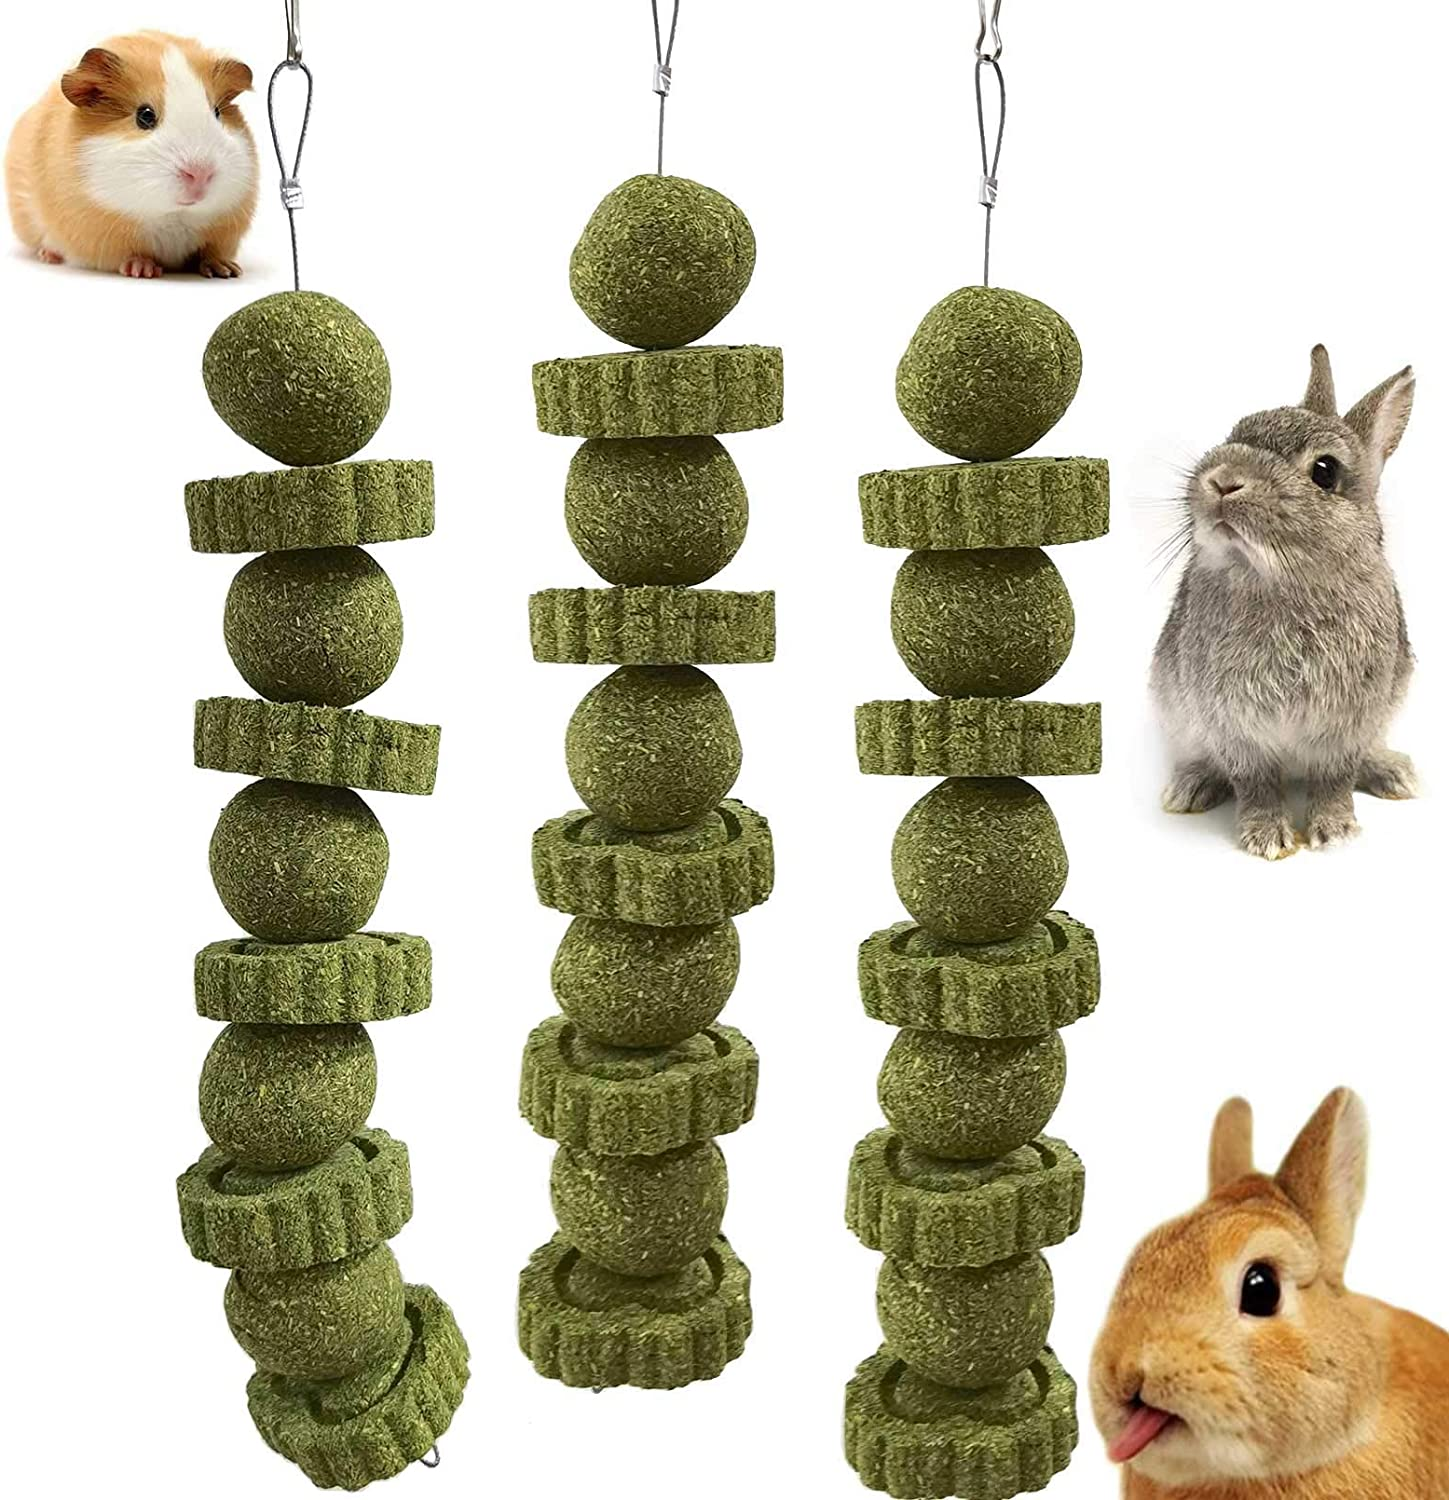 kathson Bunny Ranking TOP6 Chew Sale Special Price Toys Rabbit Chewing Grinding Toy for Ch Teeth